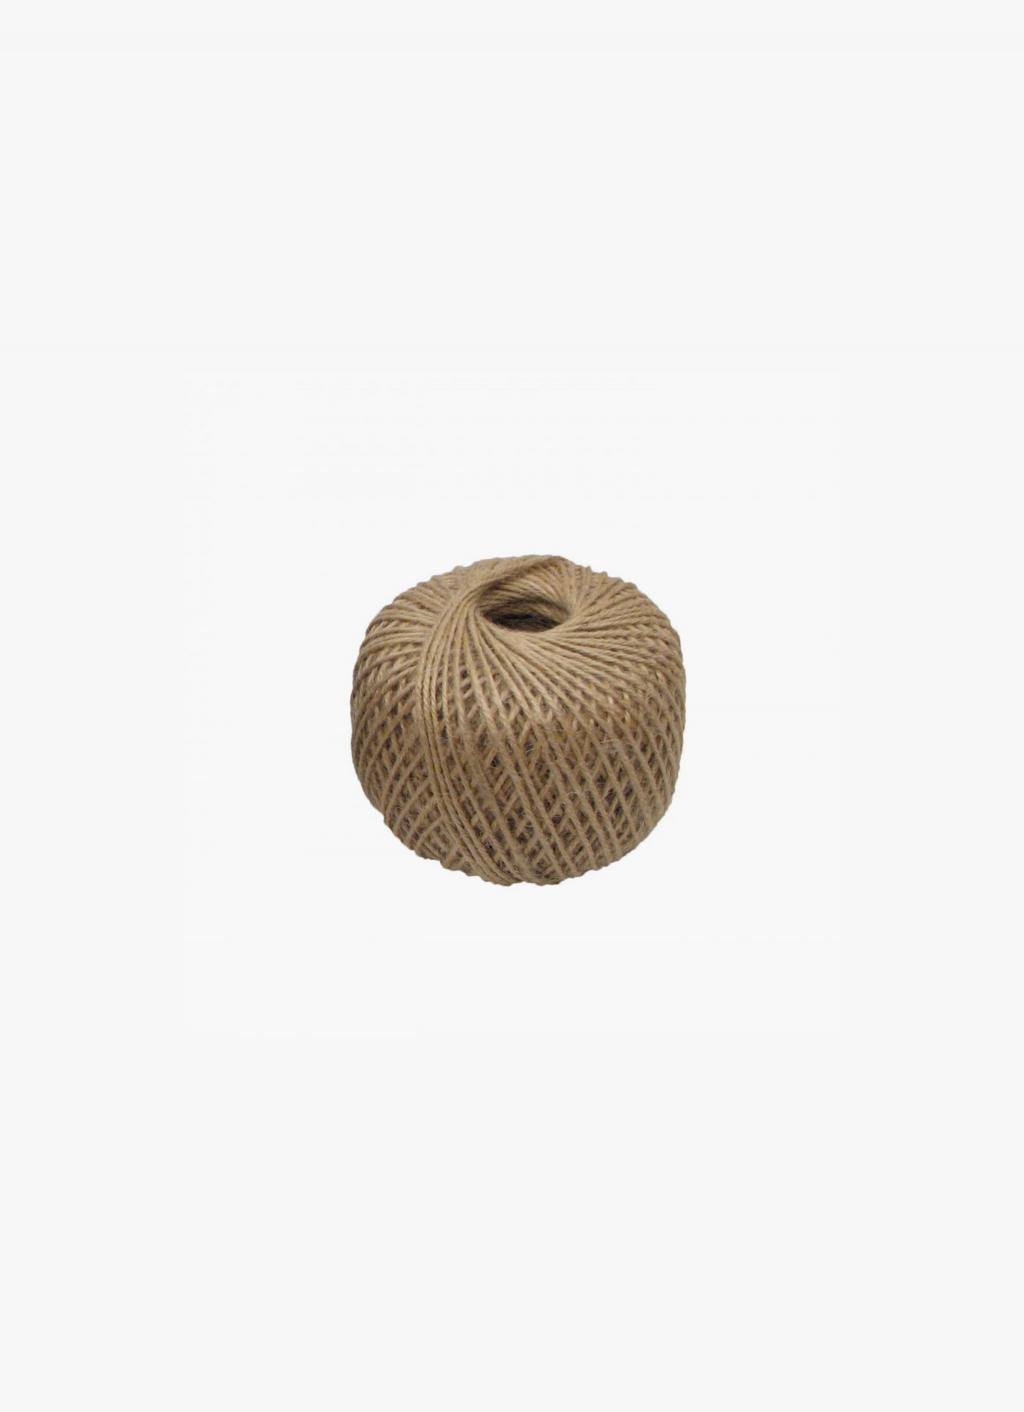 Creamore Mill Jute Twine Ball 250g Natural